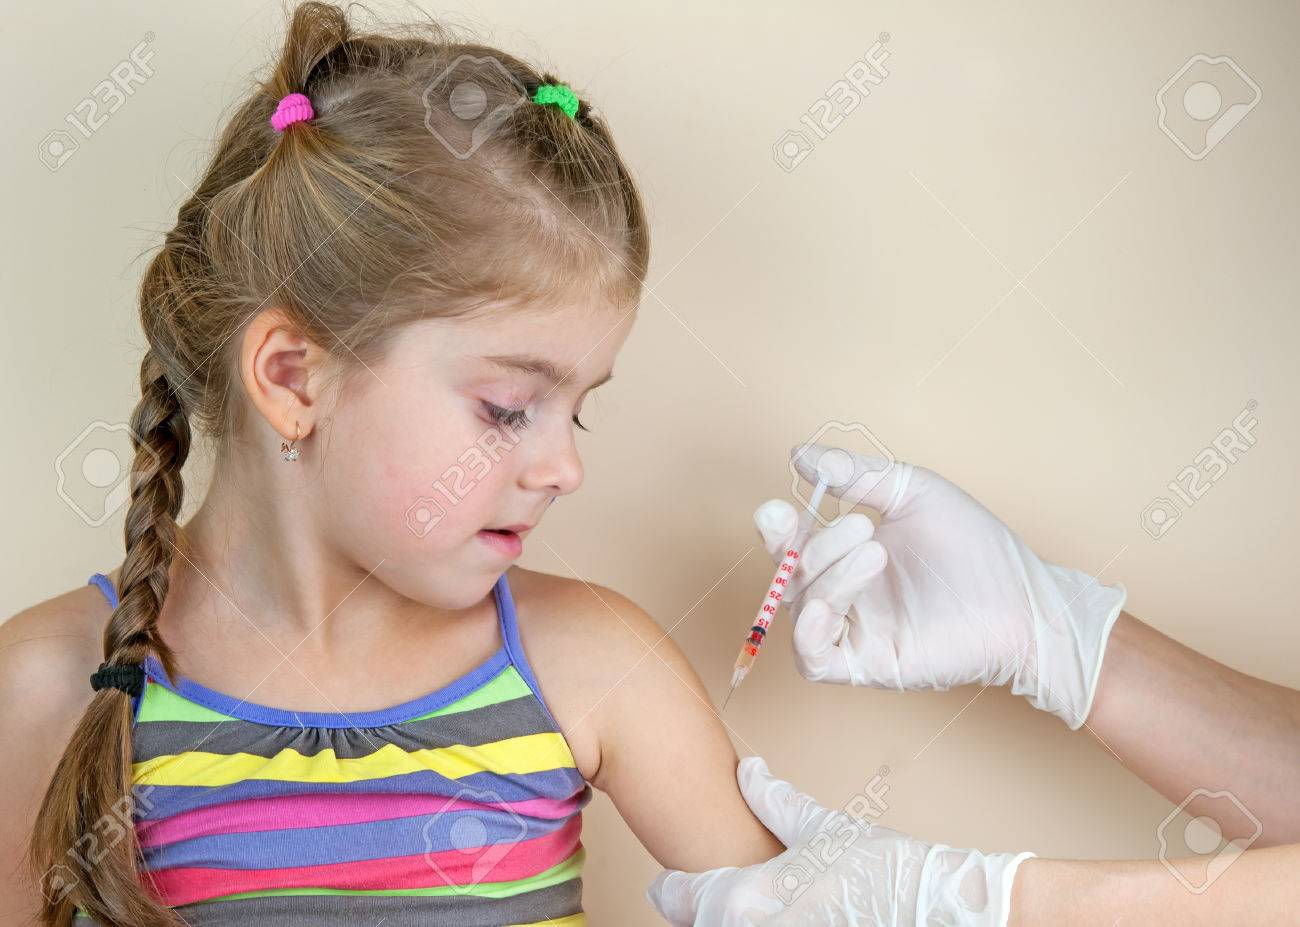 child vaccinations close up - 49202727